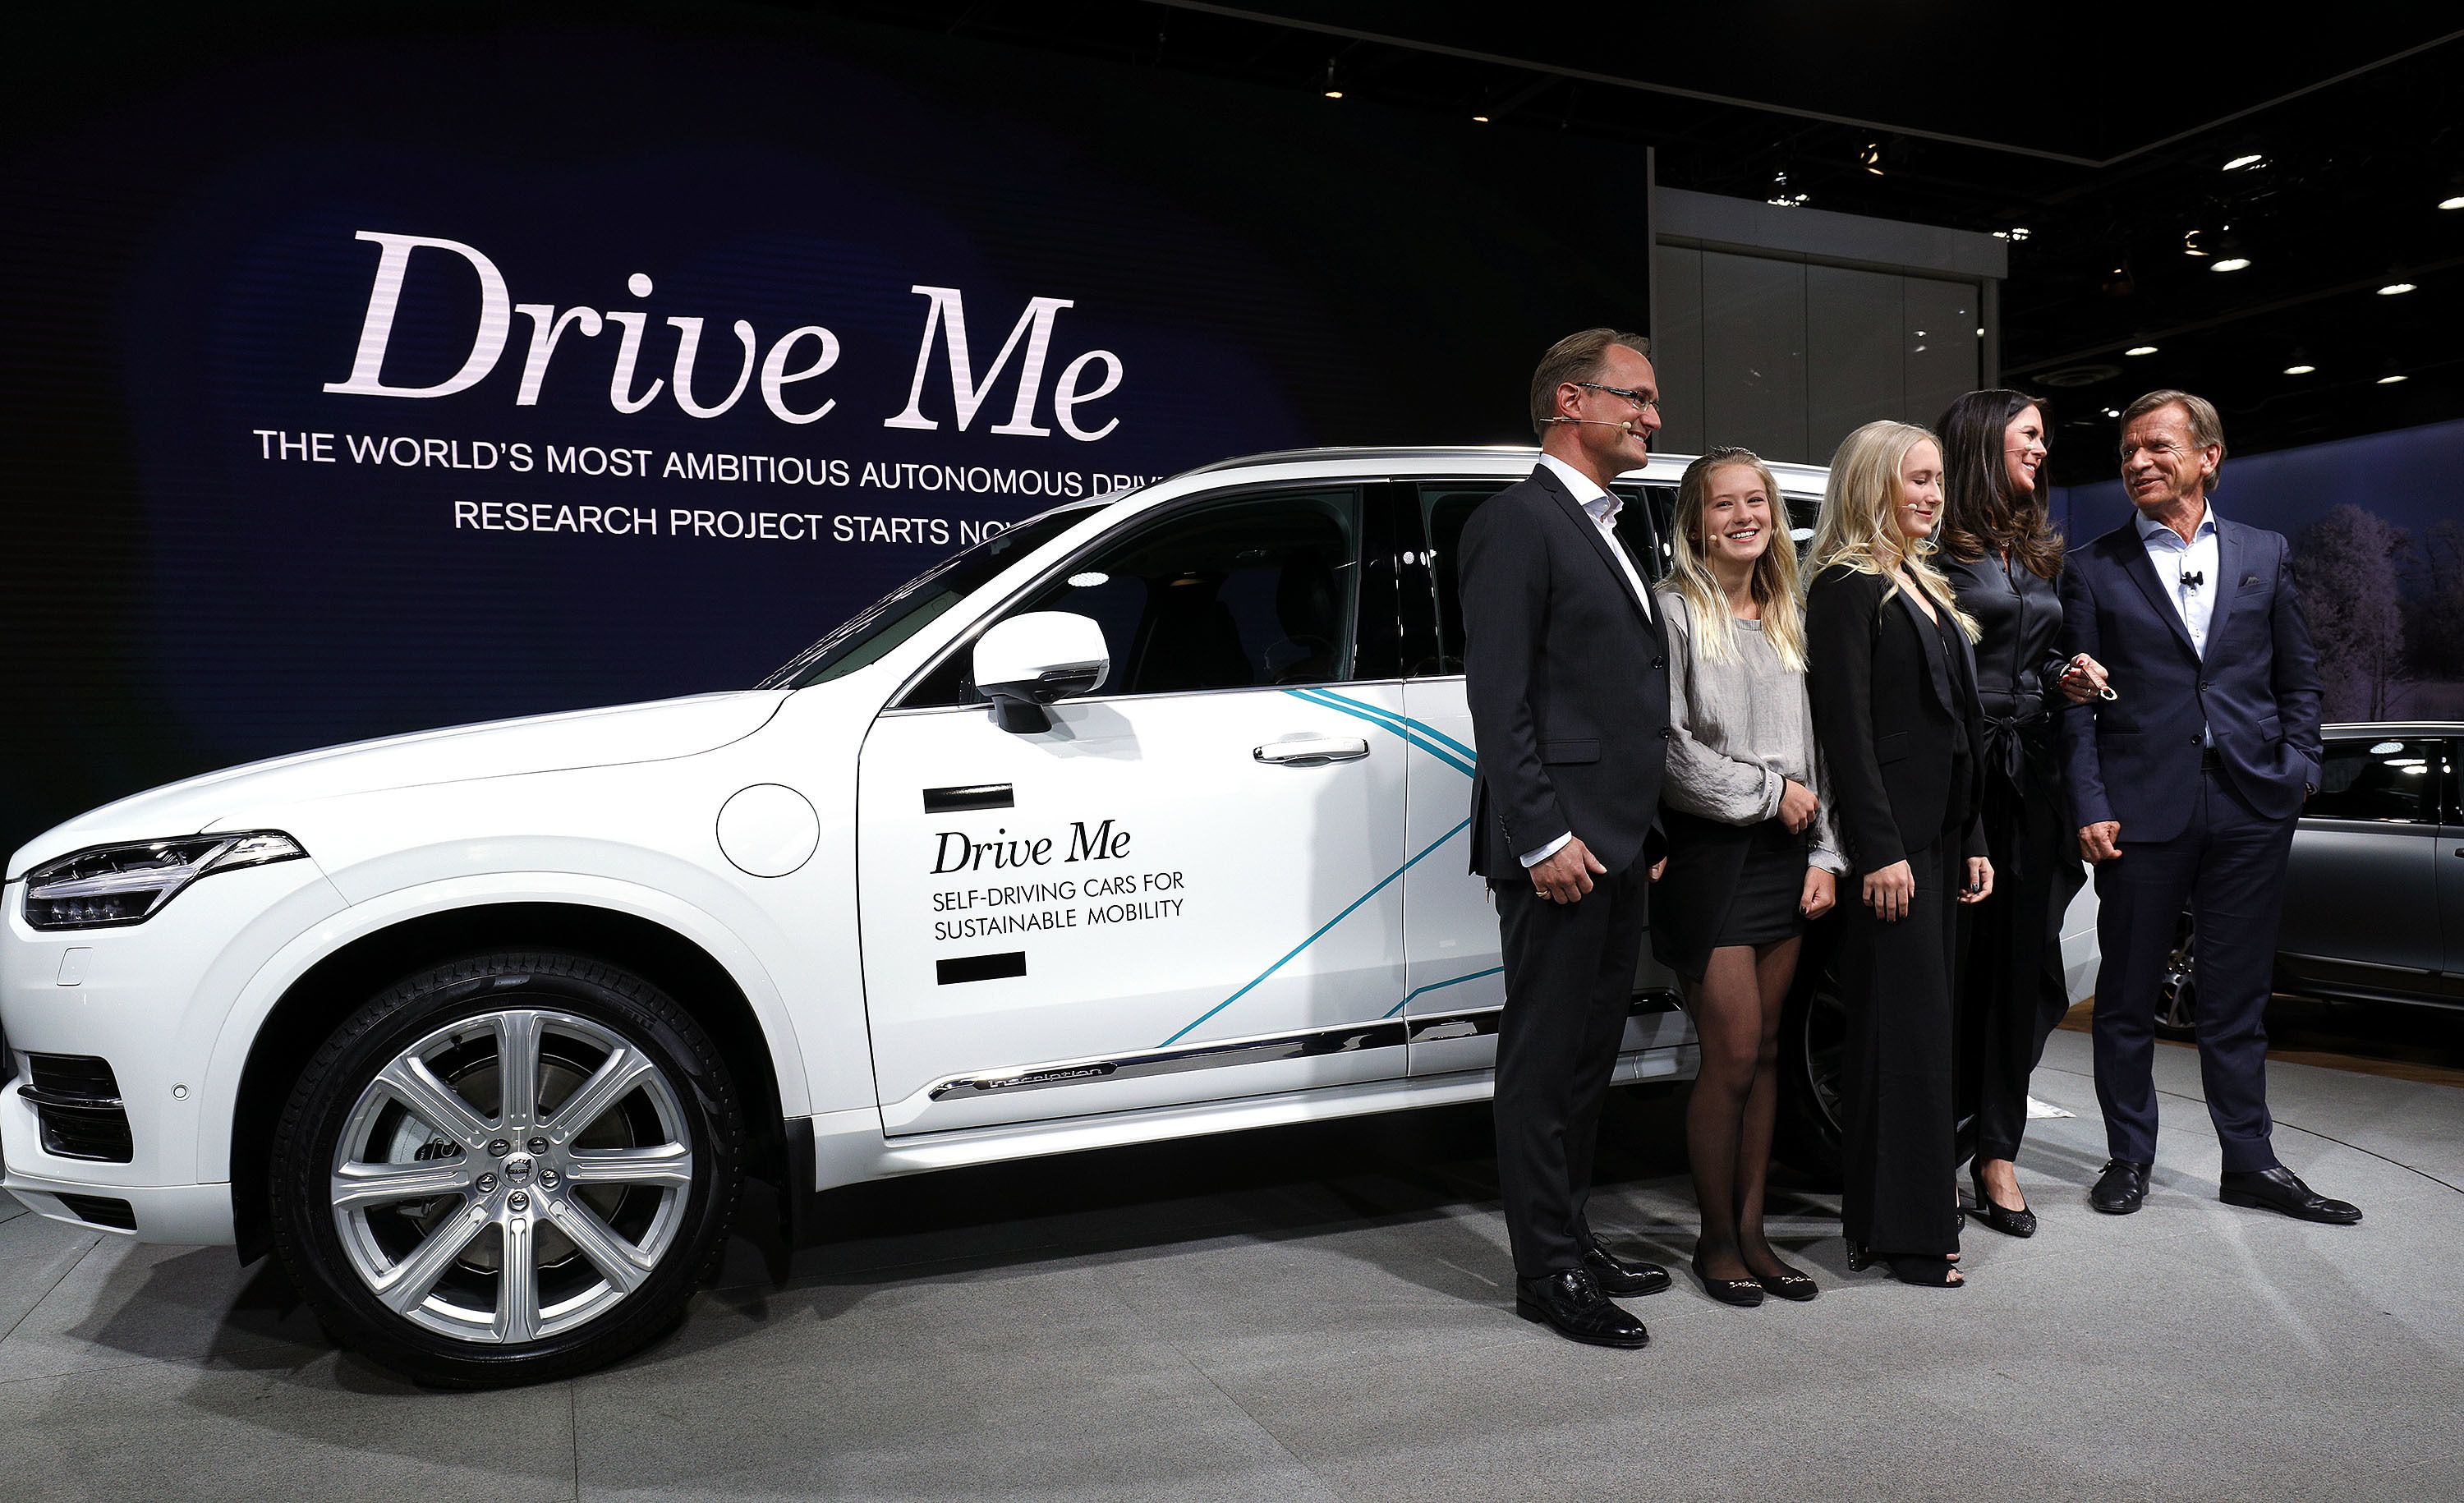 DETROIT, MI - JANUARY 9: Hakan Samuelsson (R), President and CEO, Volvo Car Group, stands with the Hain family from Sweden next to the autonomous Volvo vehicle they will be testing at the 2017 North American International Auto Show on January 9, 2017 in Detroit, Michigan. Approximately 5000 journalists from around the world and nearly 800,000 people are expected to attend the NAIAS between January 8th and January 22nd to see the more than 750 vehicles and numerous interactive displays. (Photo by Bill Pugliano/Getty Images)